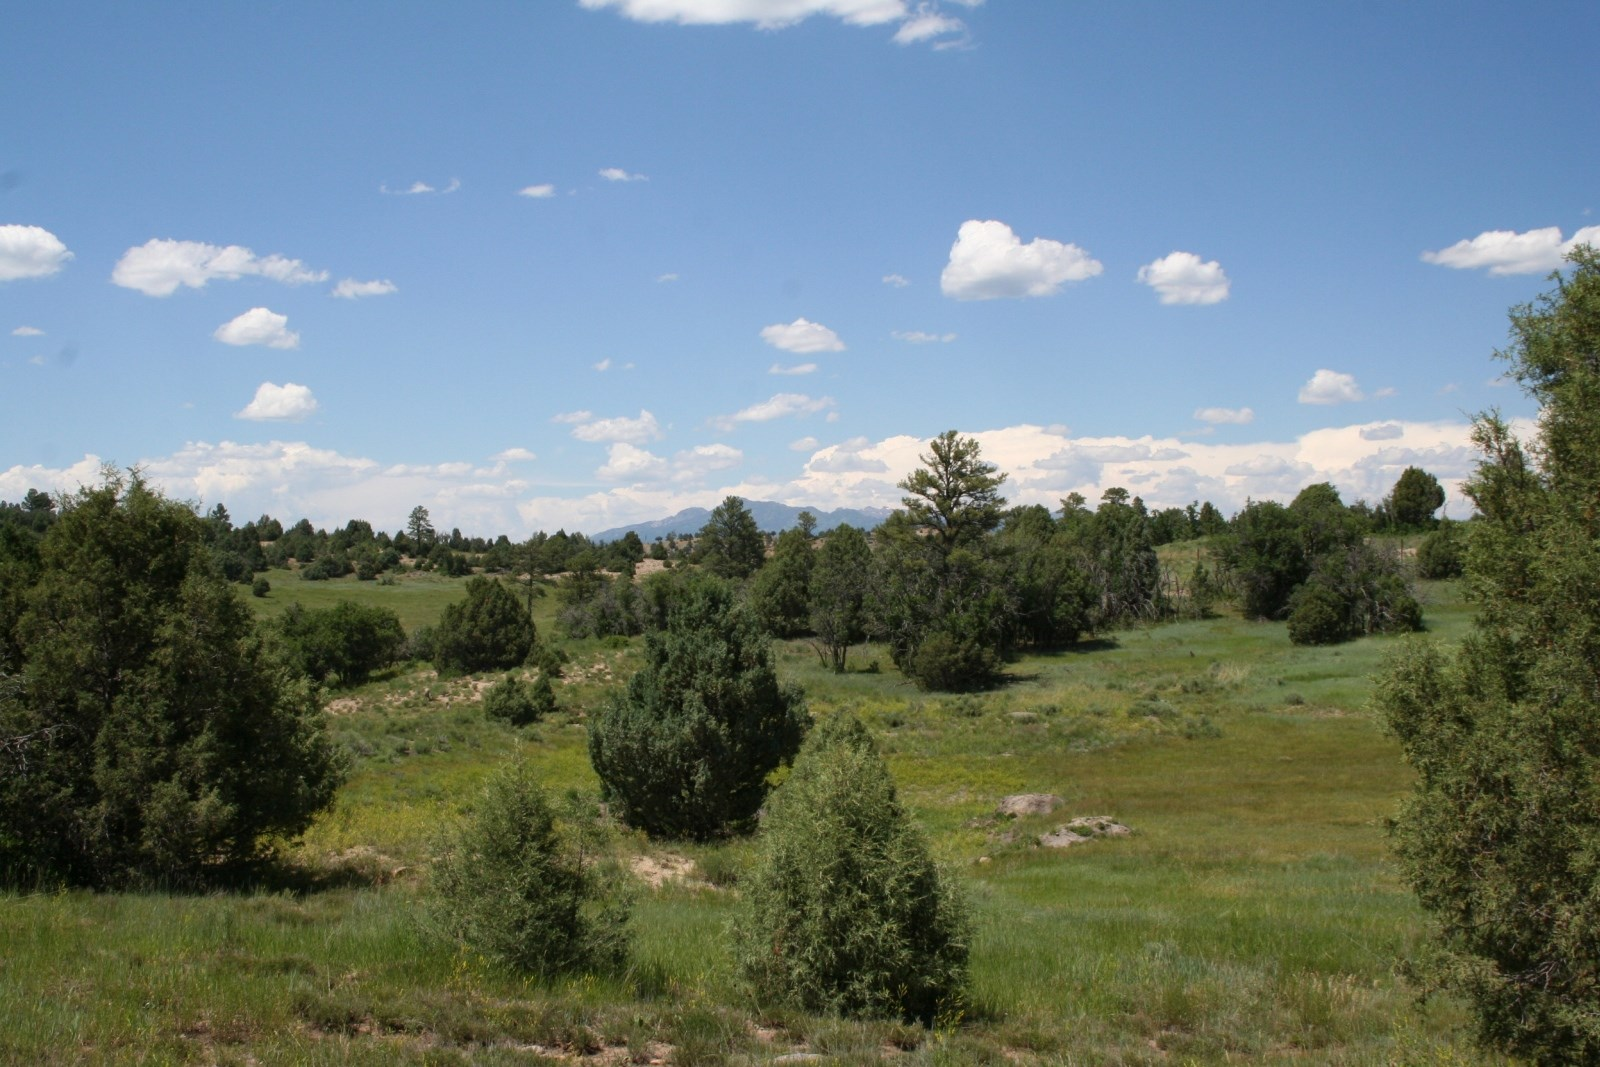 Chama New Mexico Property for Sale with Power and Water